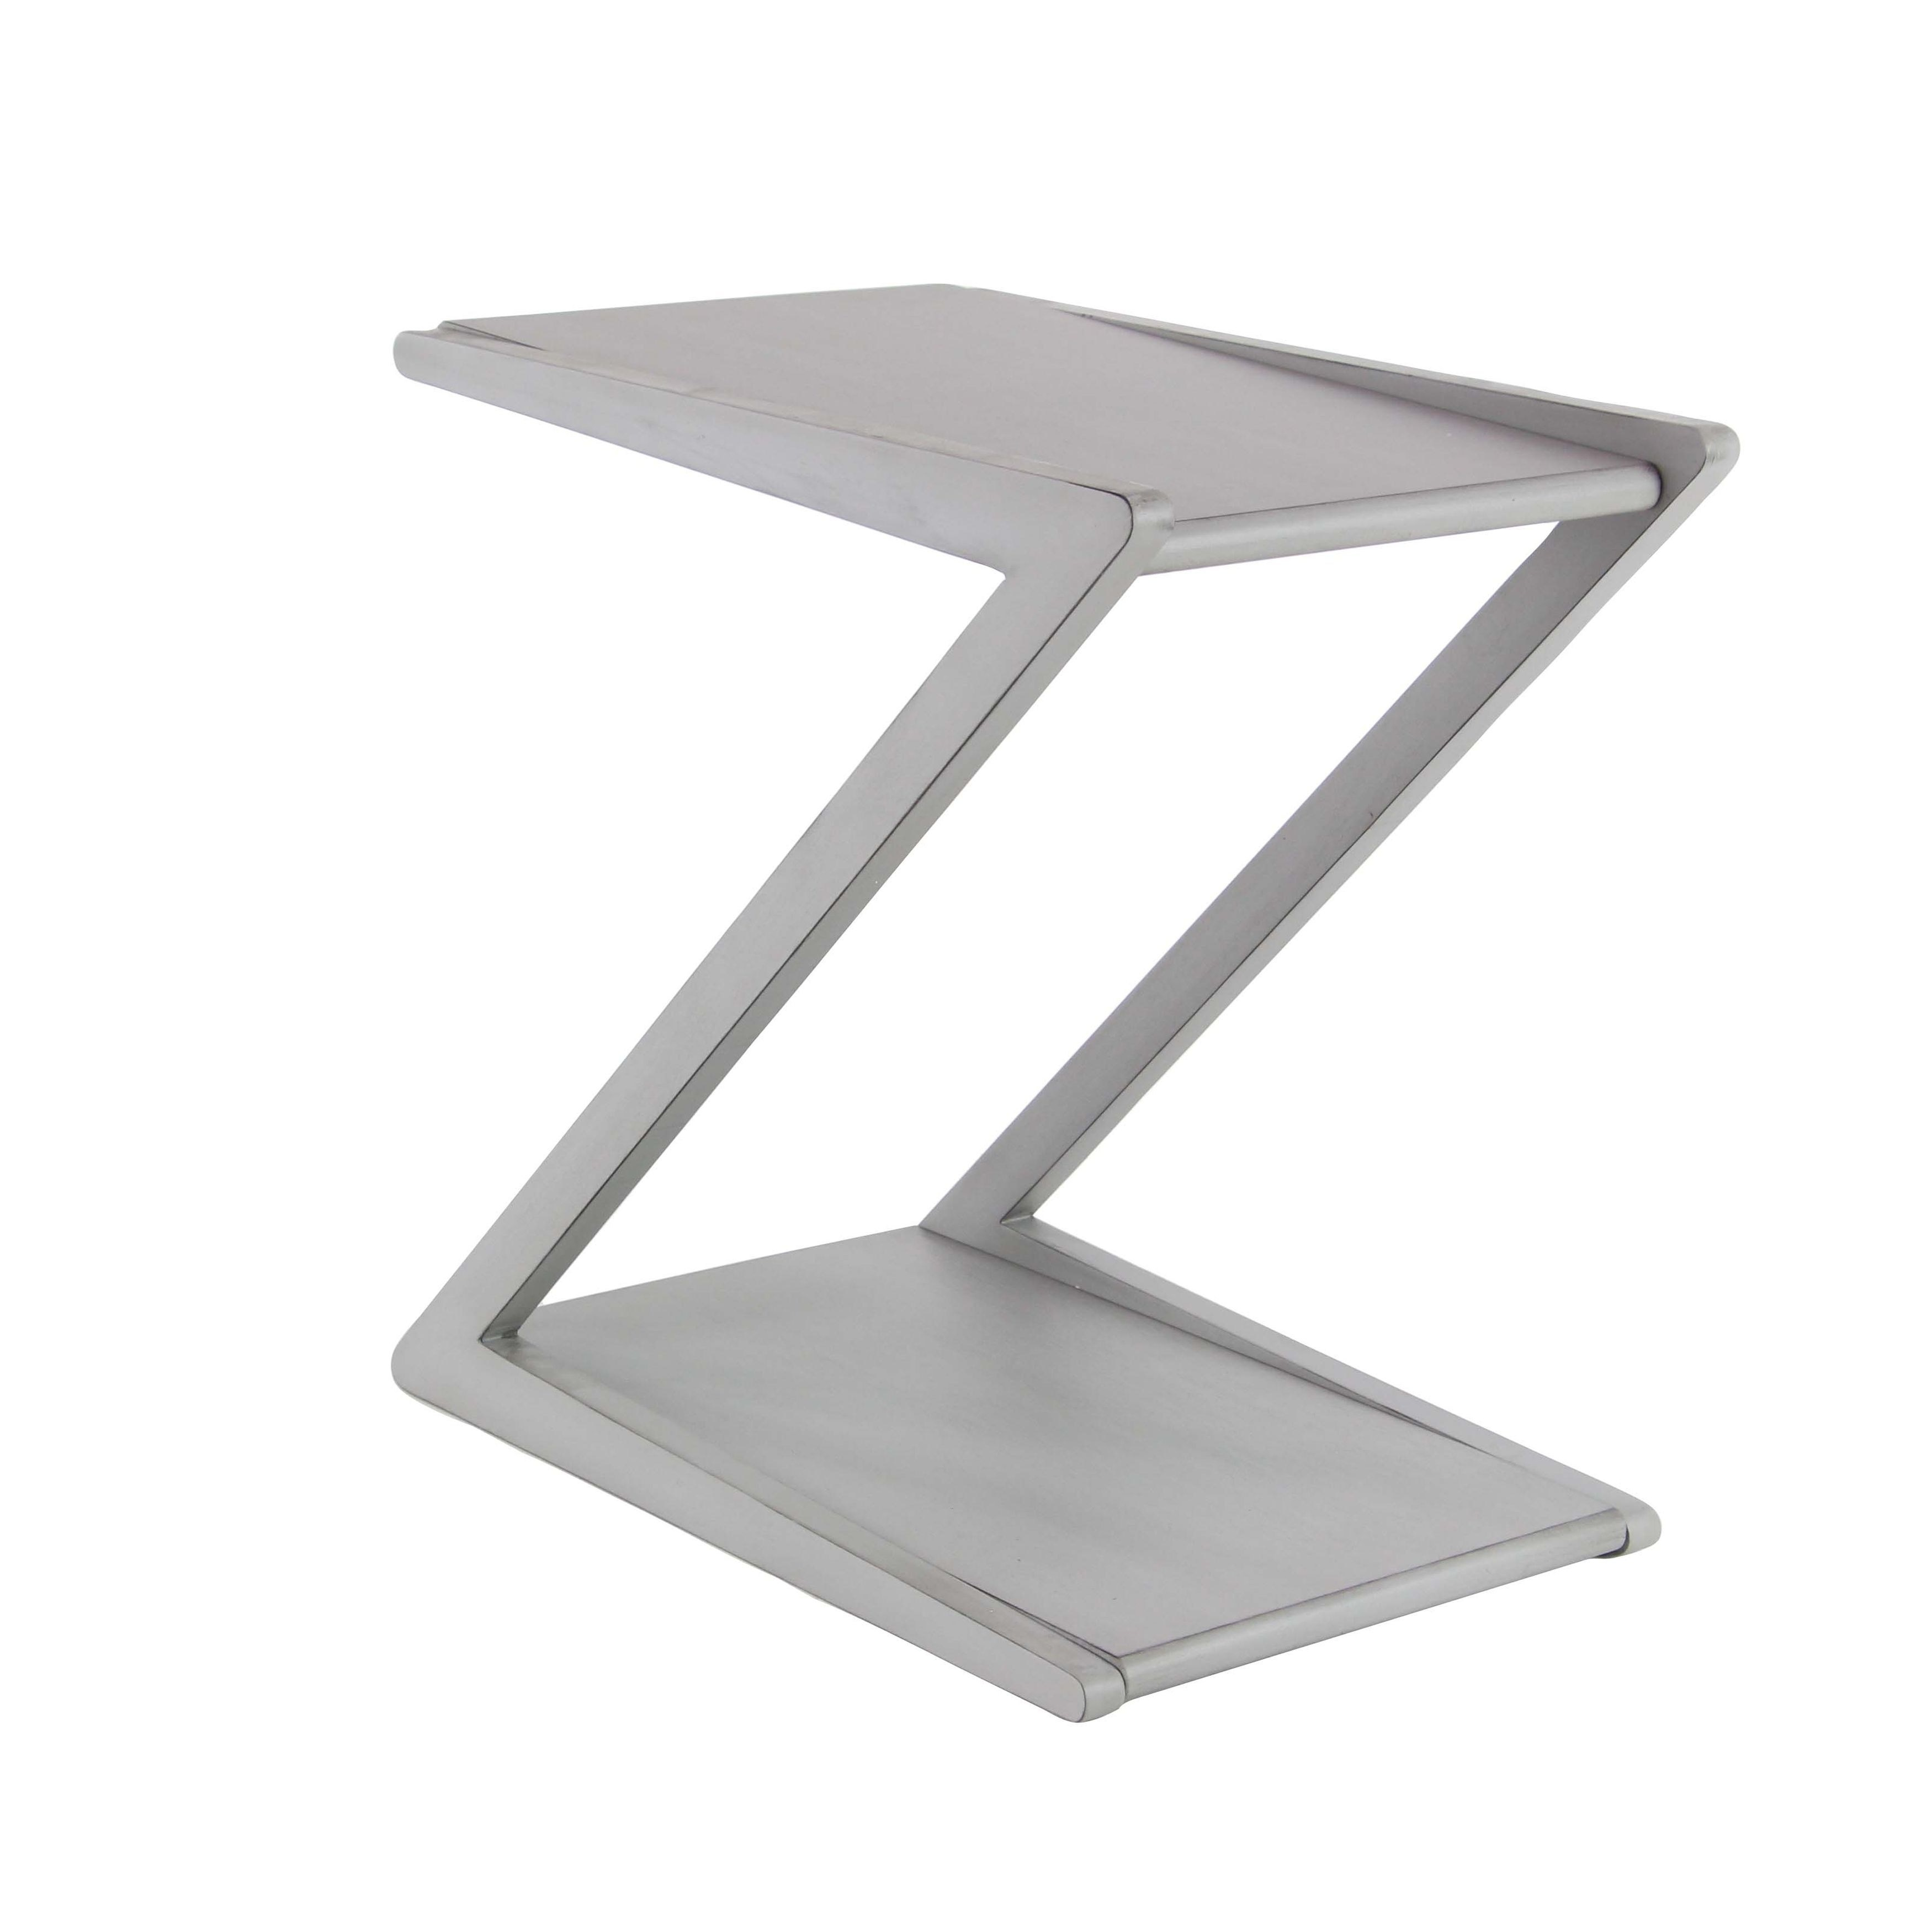 modern wooden shaped white accent table free shipping today glass mirror coffee pottery barn square coastal inspired chandeliers chrome threshold bars floor kids plastic nic globe